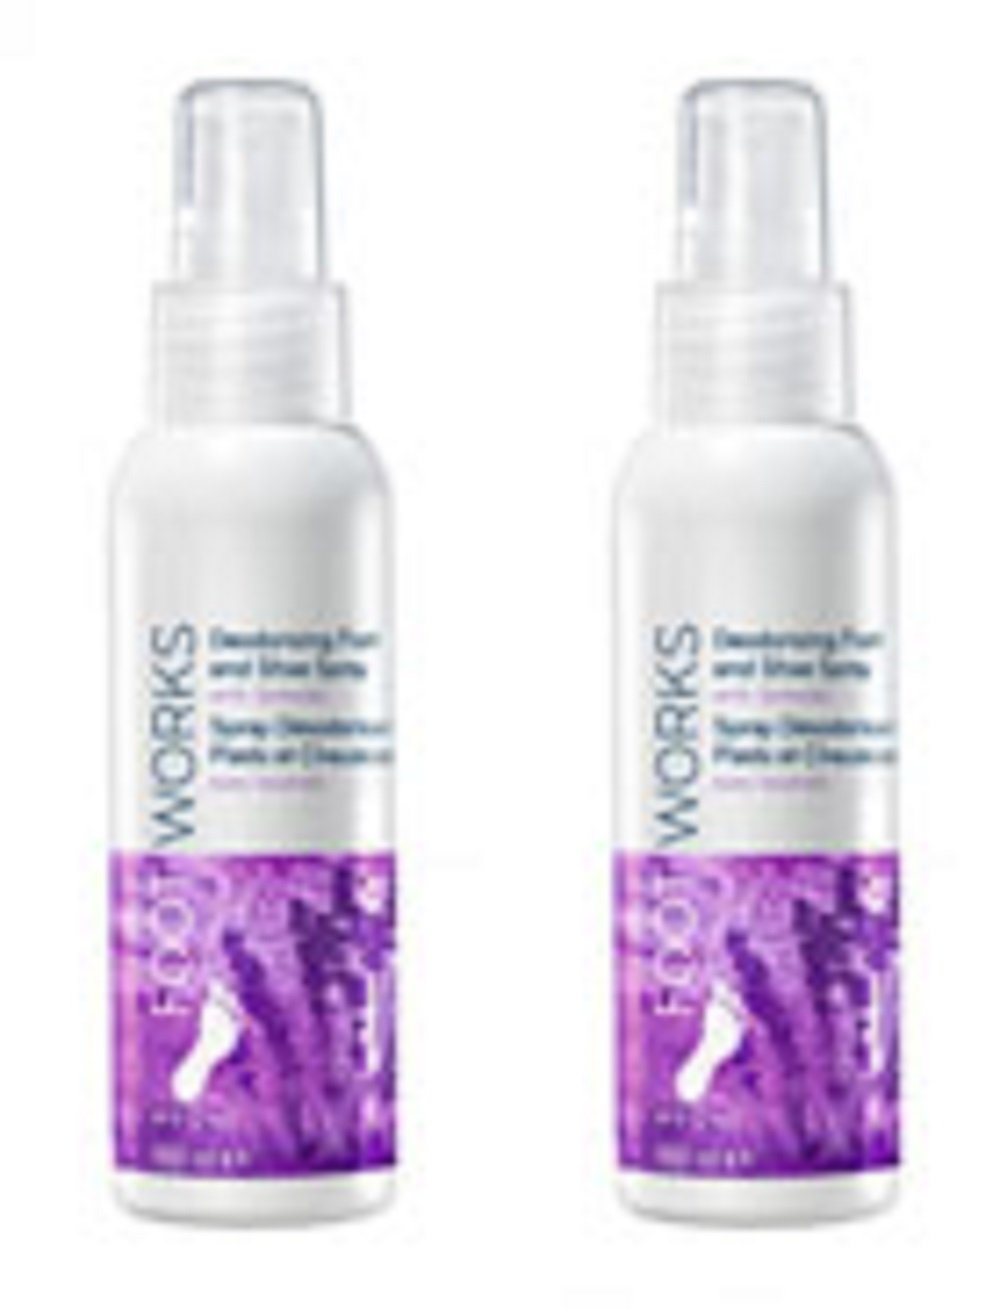 2 x Foot Works Deodorising Foot and Shoe Spray with lavender – 100ml. Avon